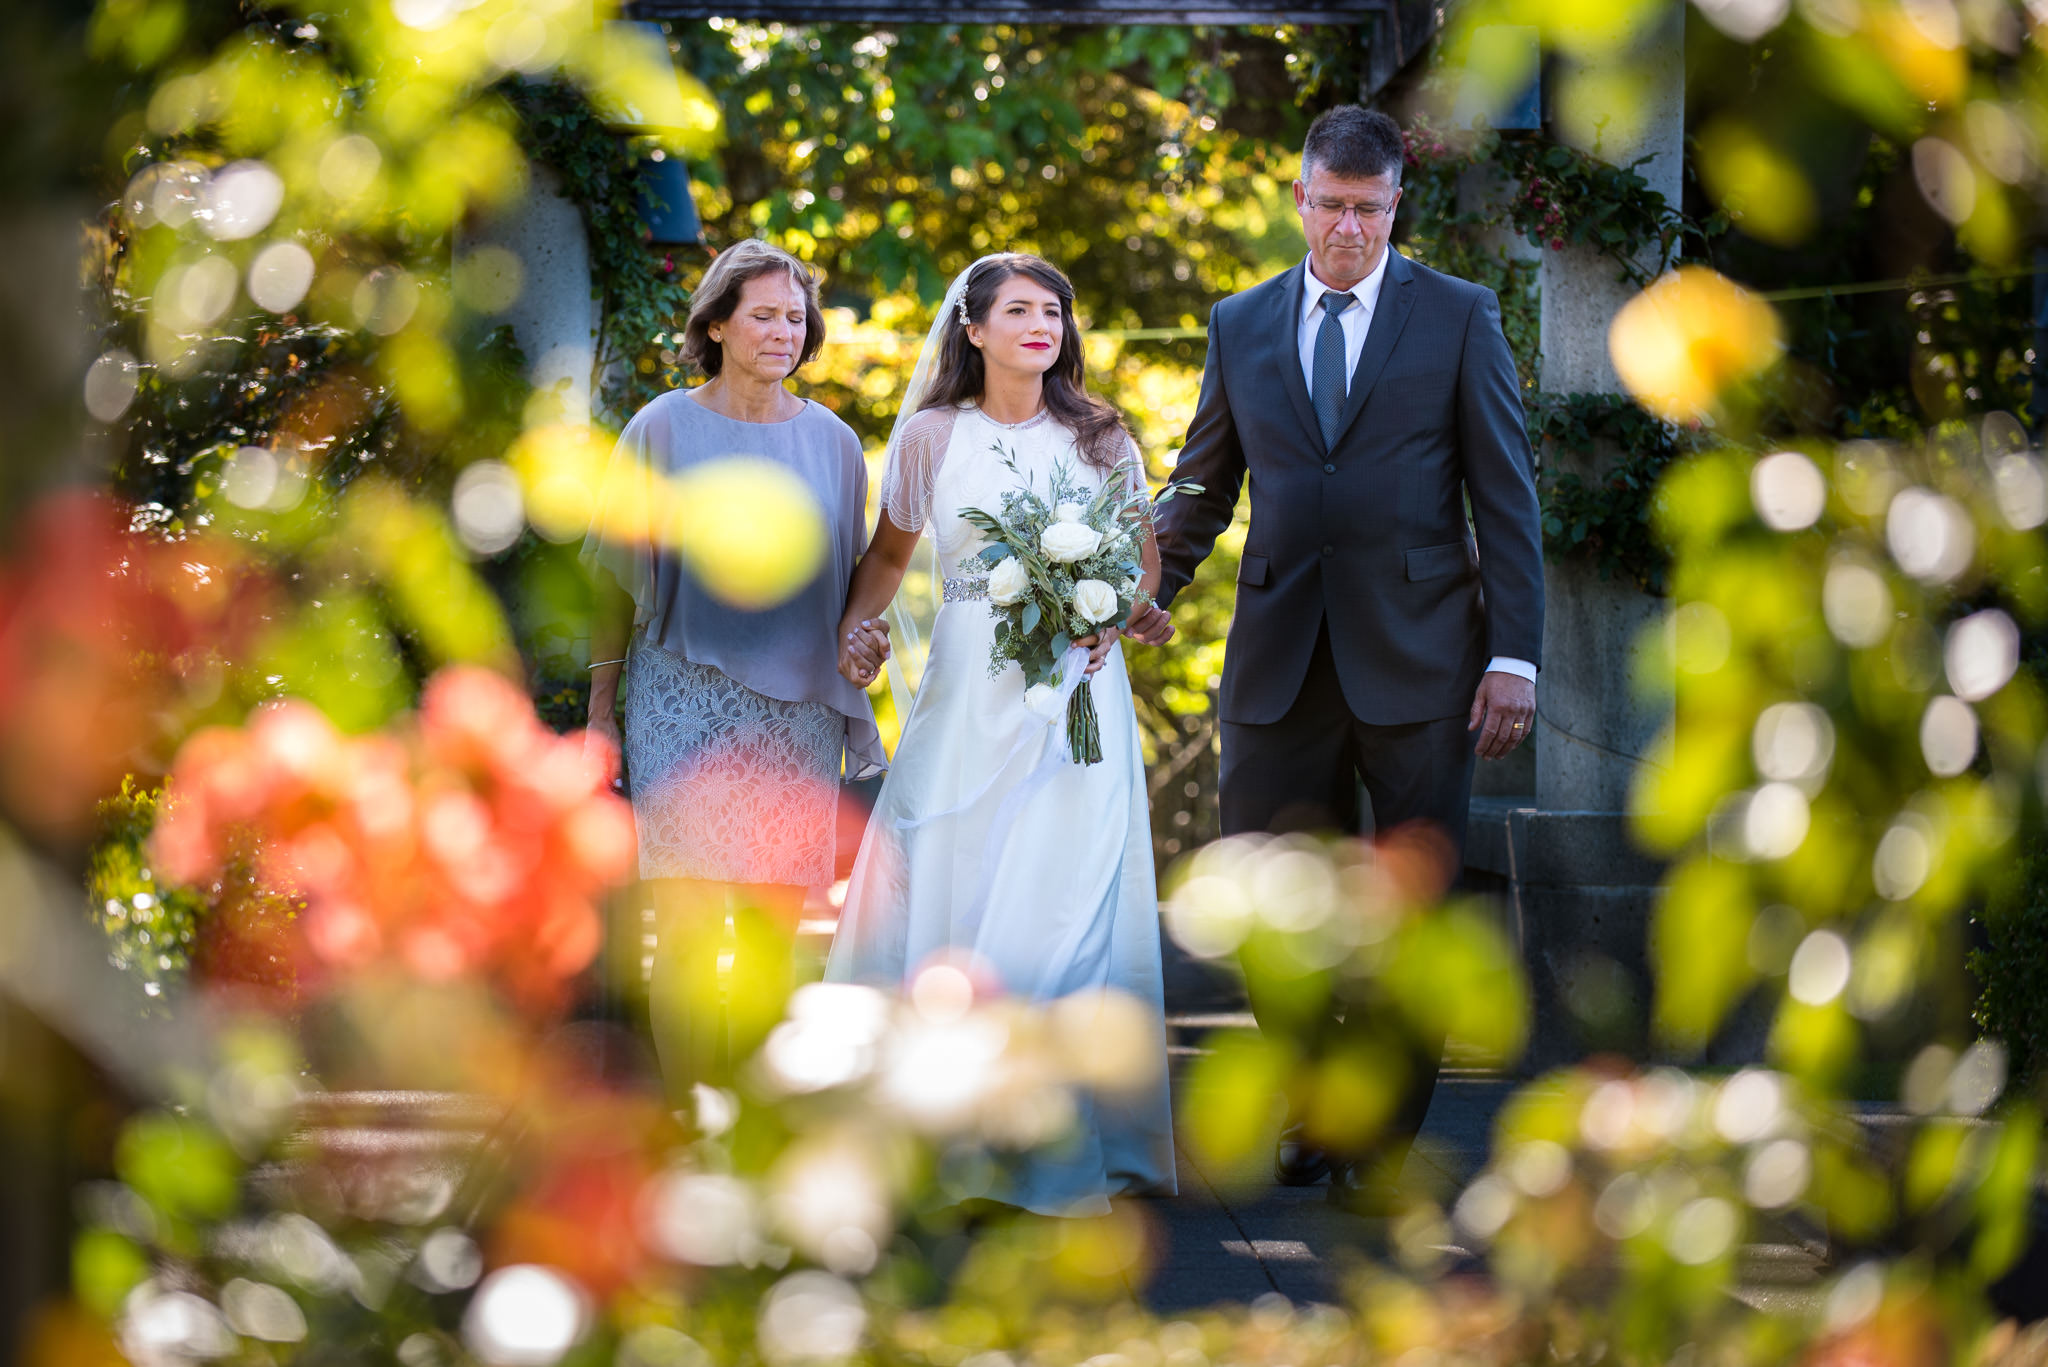 ubc-rose-garden-wedding-sage-bistro-wedding-bc-wedding-photographer-31.jpg